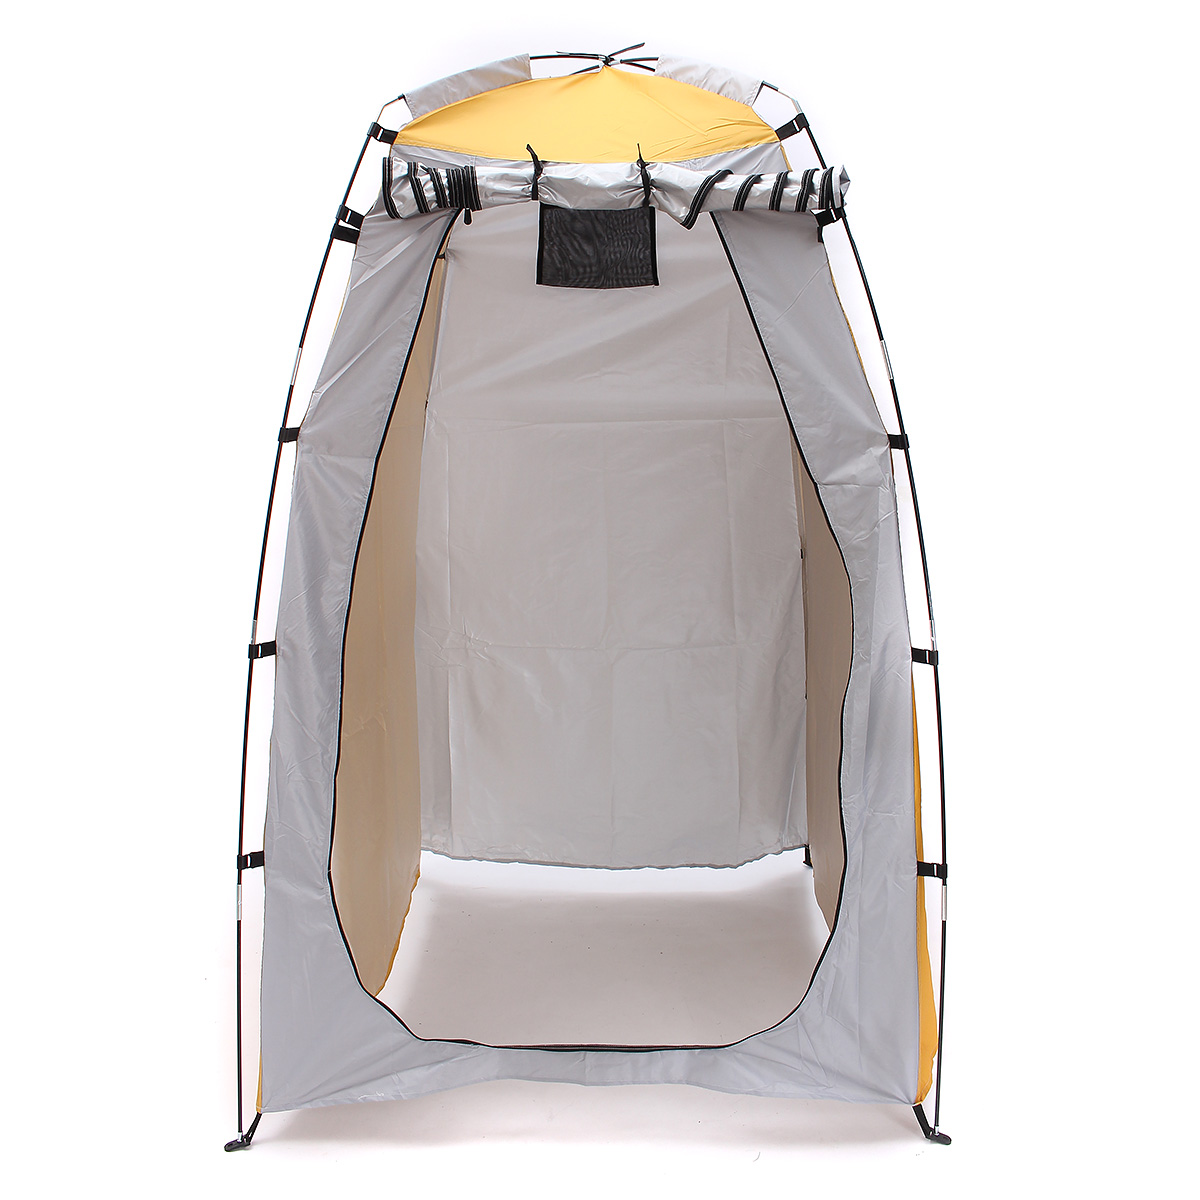 IPRee™ Protable Pop Up Outdoor Privacy Tent Sunshade Dressing Changing Room Mobile Toilet Shelter Camping Travel Emergency Canopy